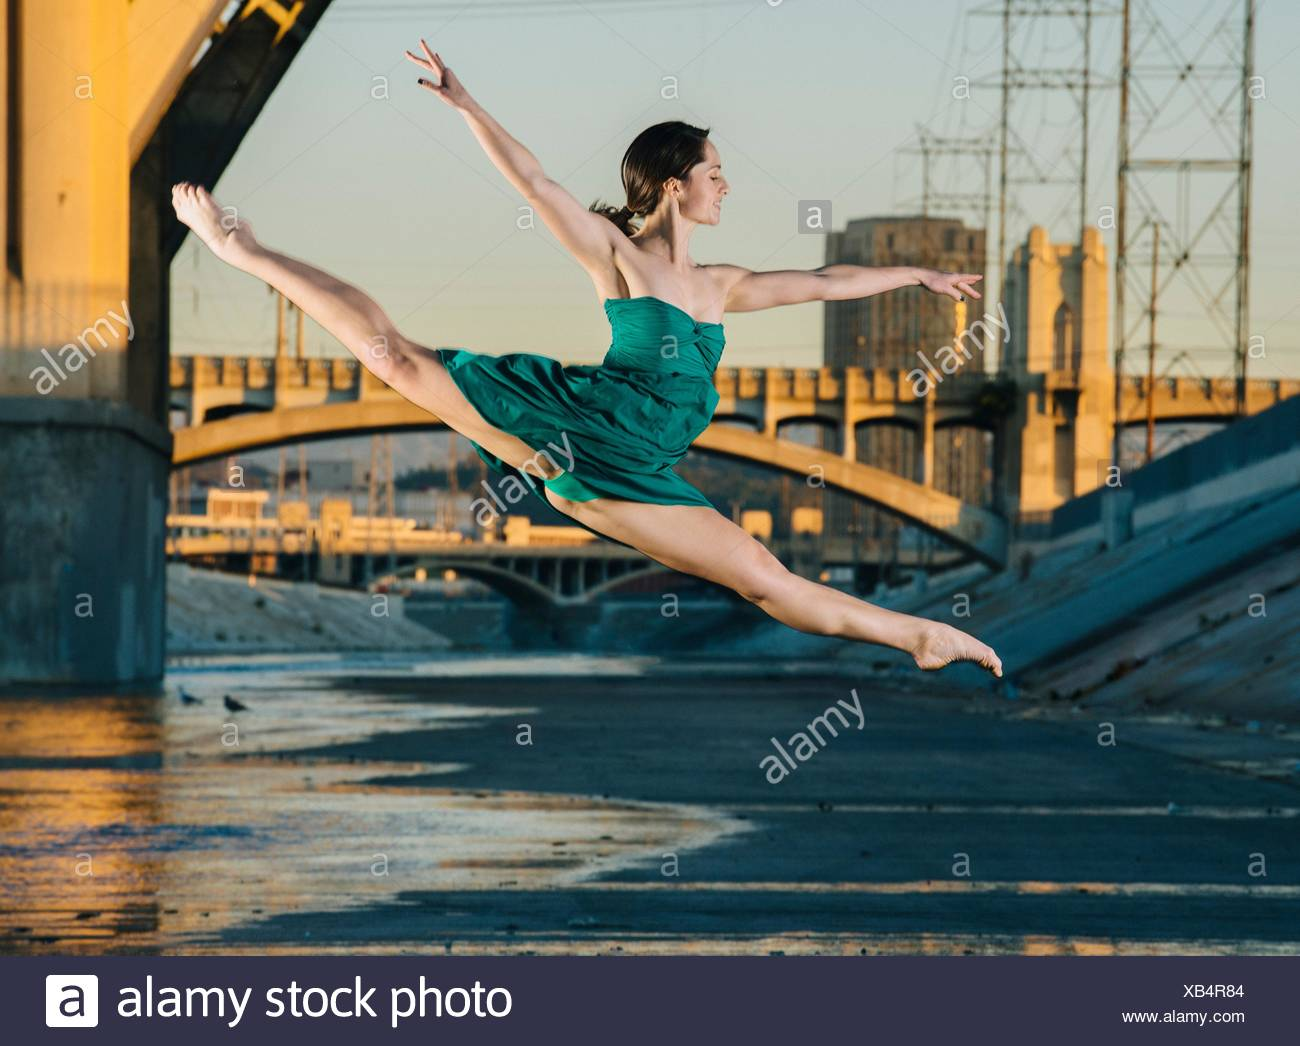 Young female dancer leaping in mid air, Los Angeles, USA - Stock Image